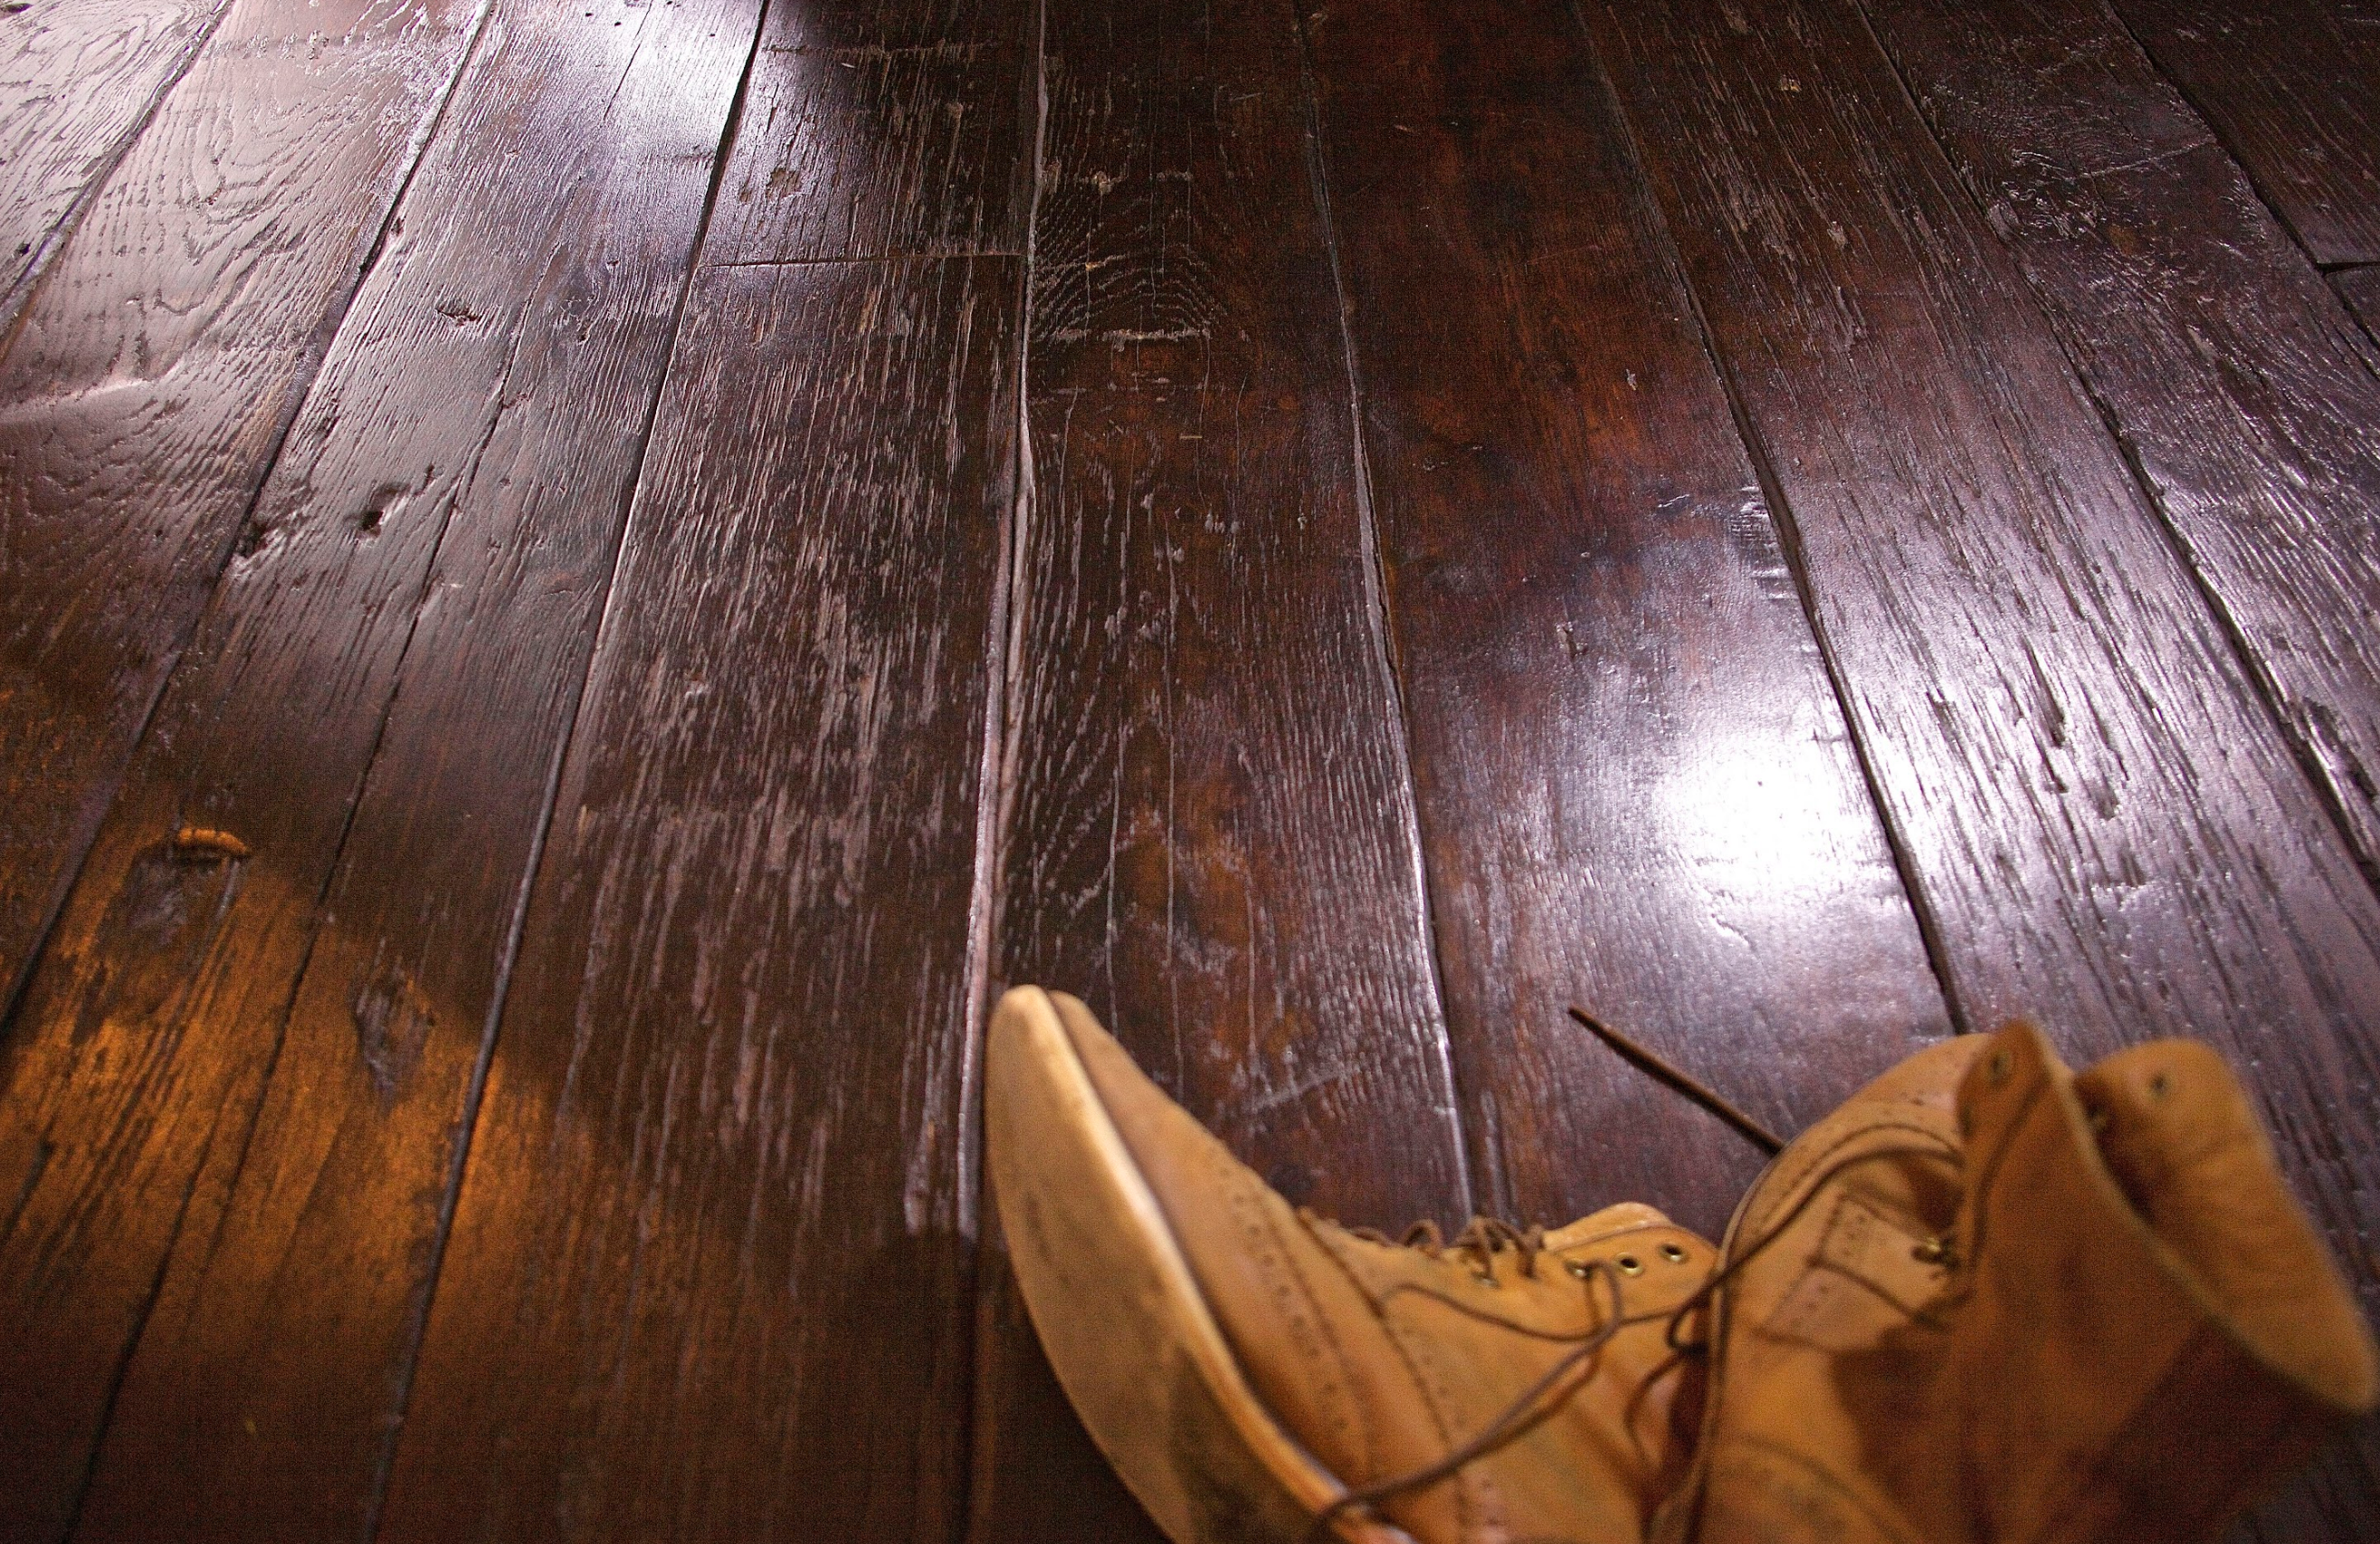 Can You Use Steam Mops to Clean Wood Floors?